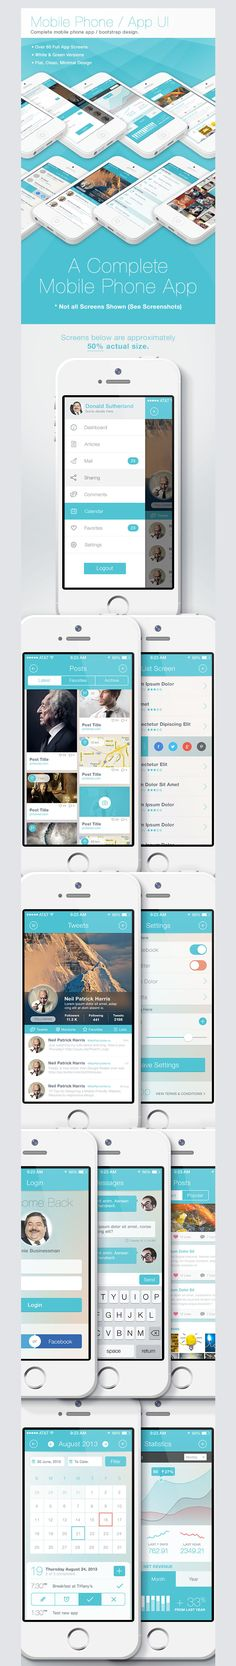 Flat iPhone iOS 7 - Mobile App Bootstrap UI